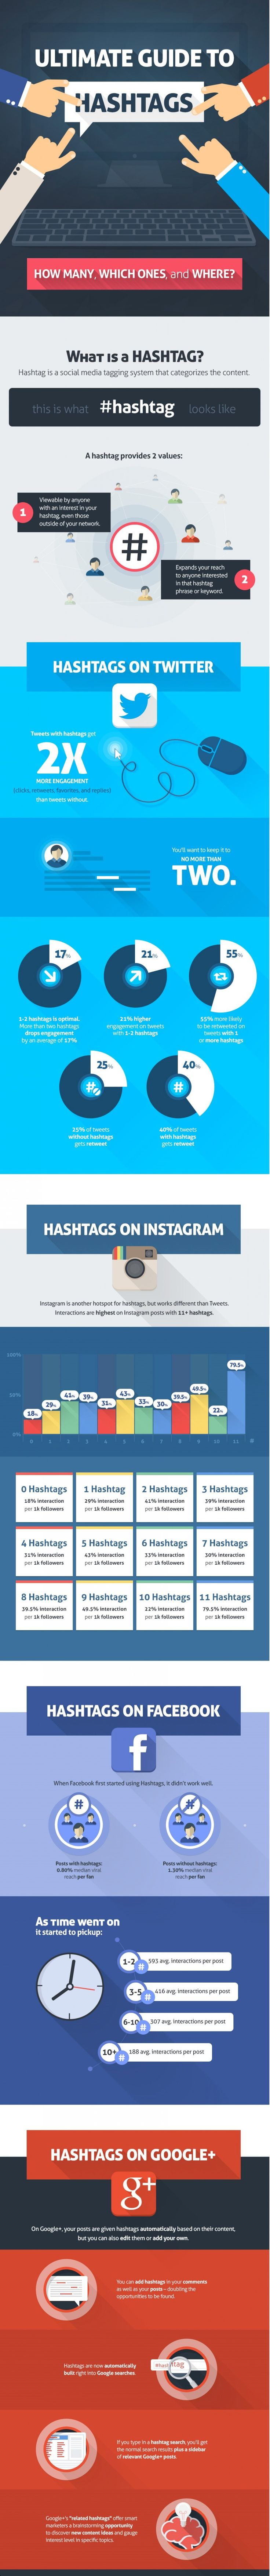 The Ultimate Guide to Using Hashtags [Infographic]